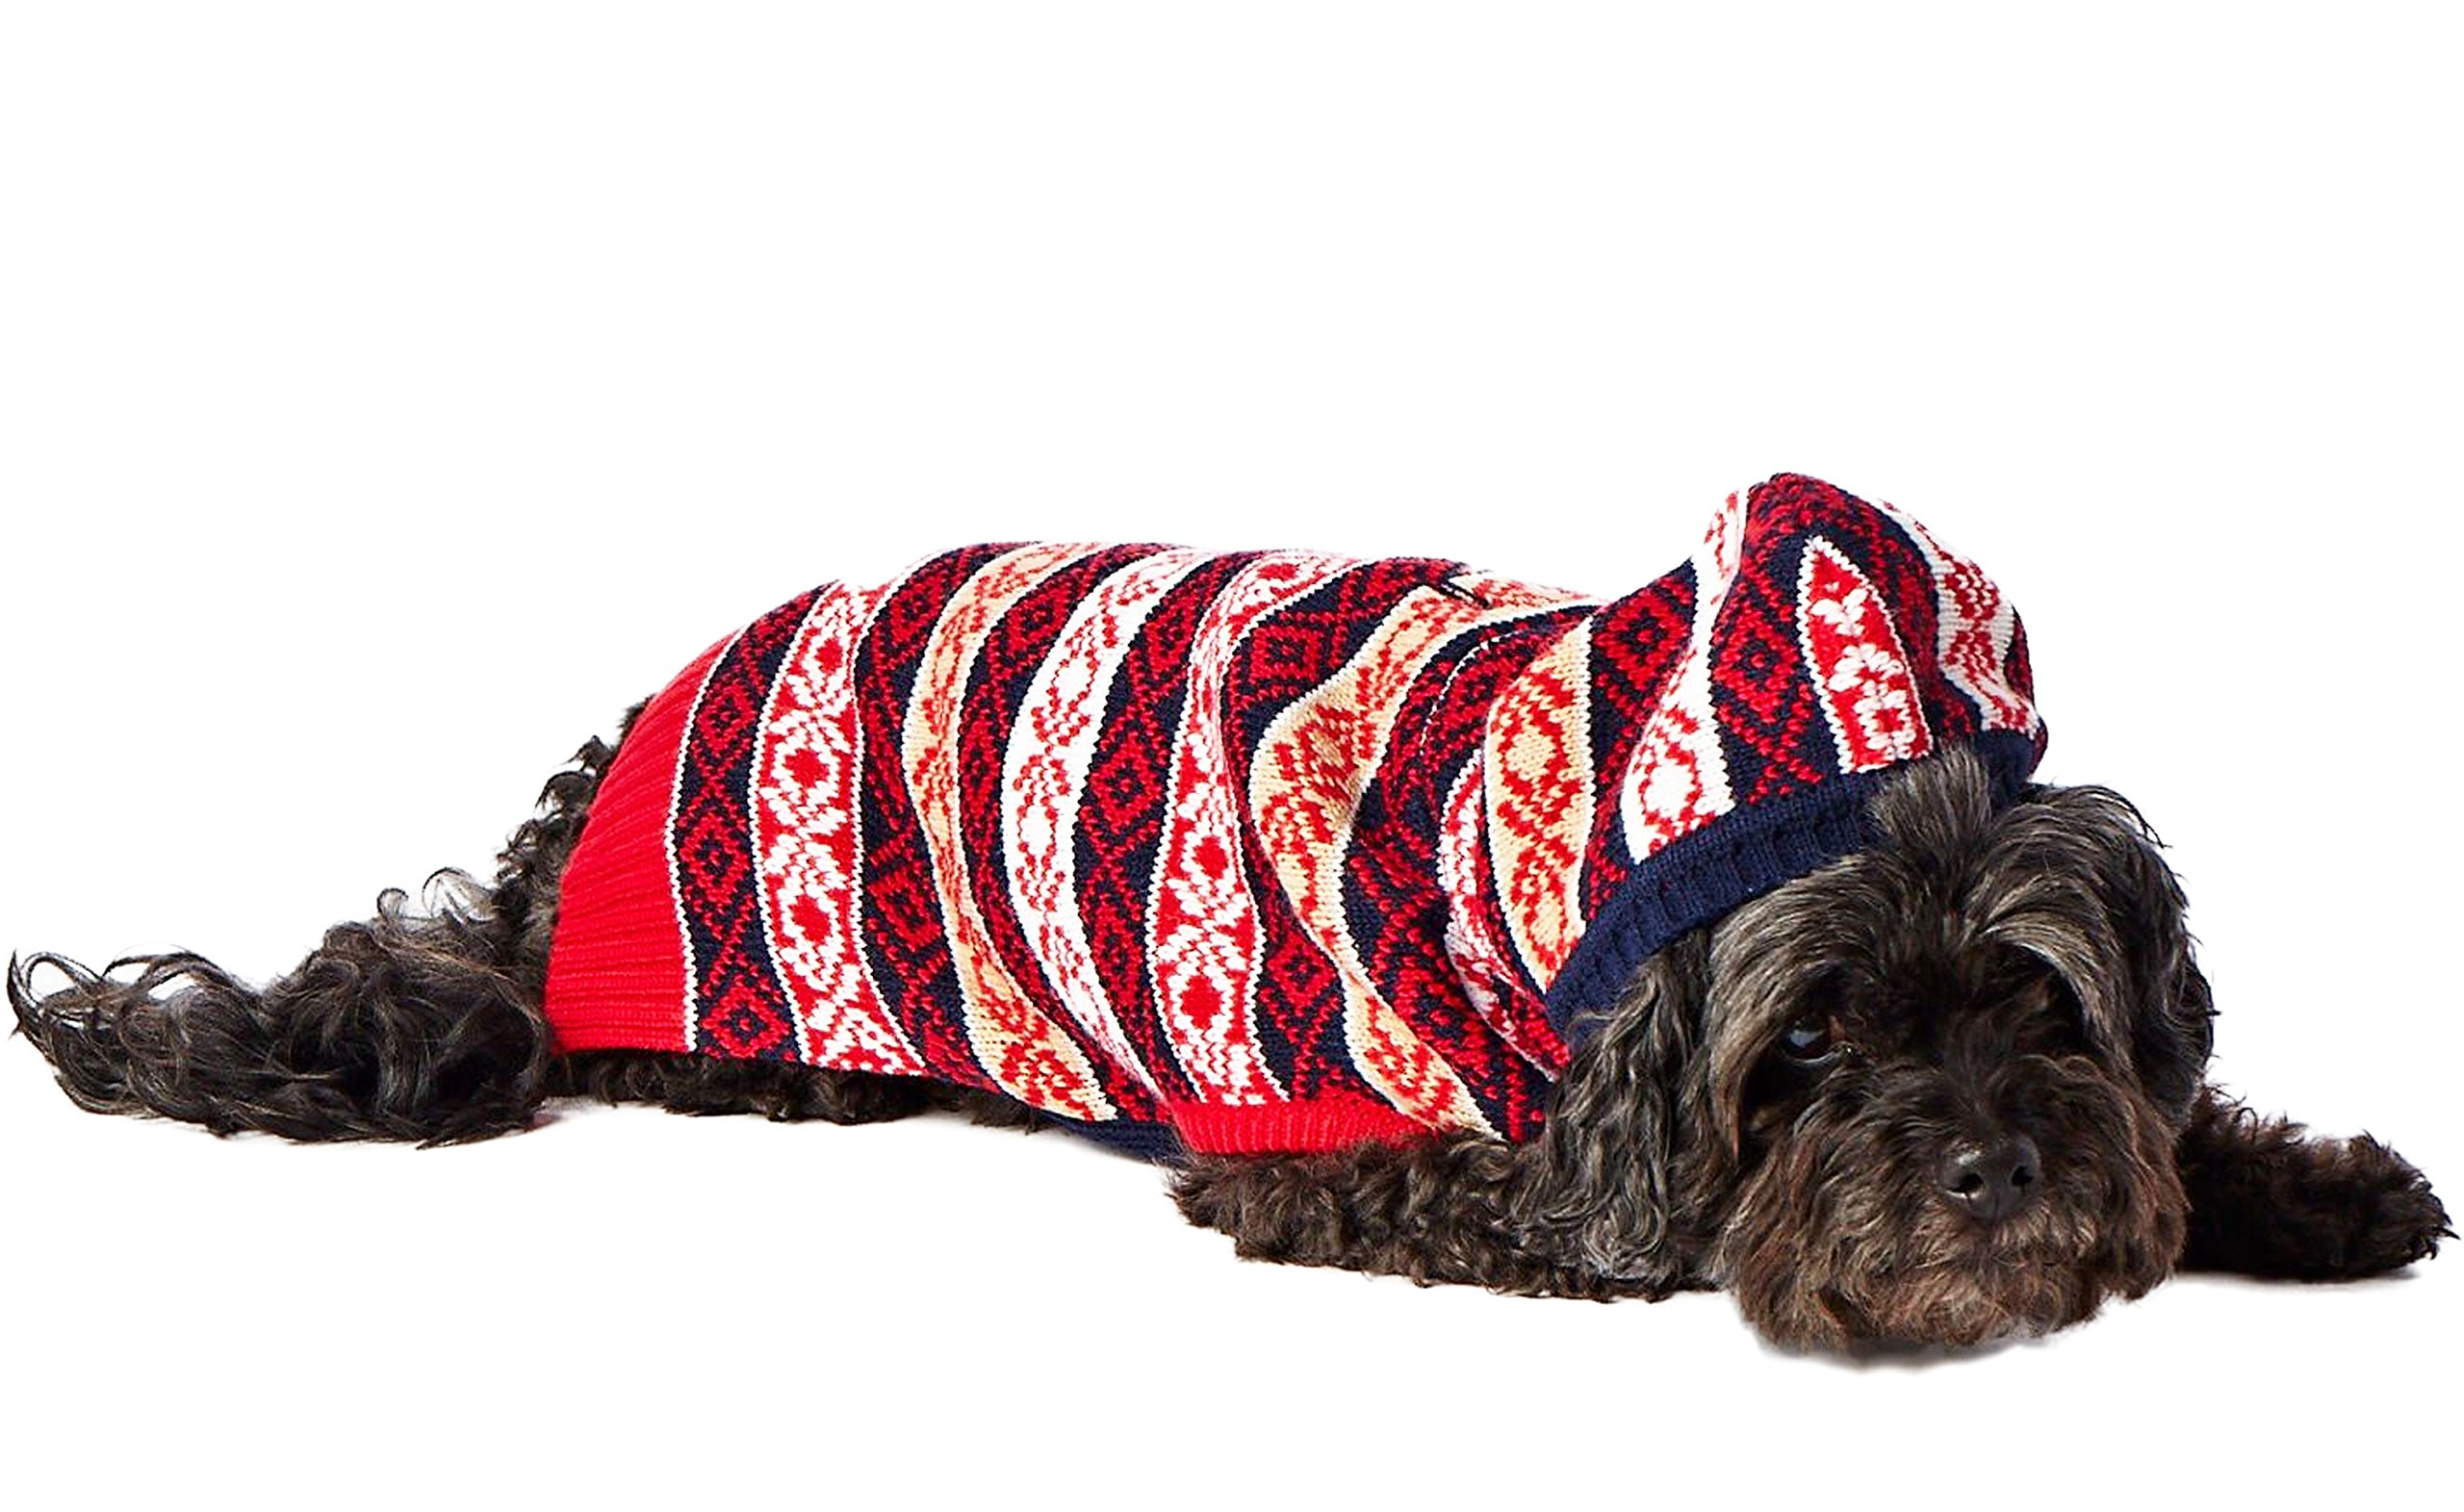 Hotel Doggy Jacquard Hooded Sweater, Peacoat Blue, Small